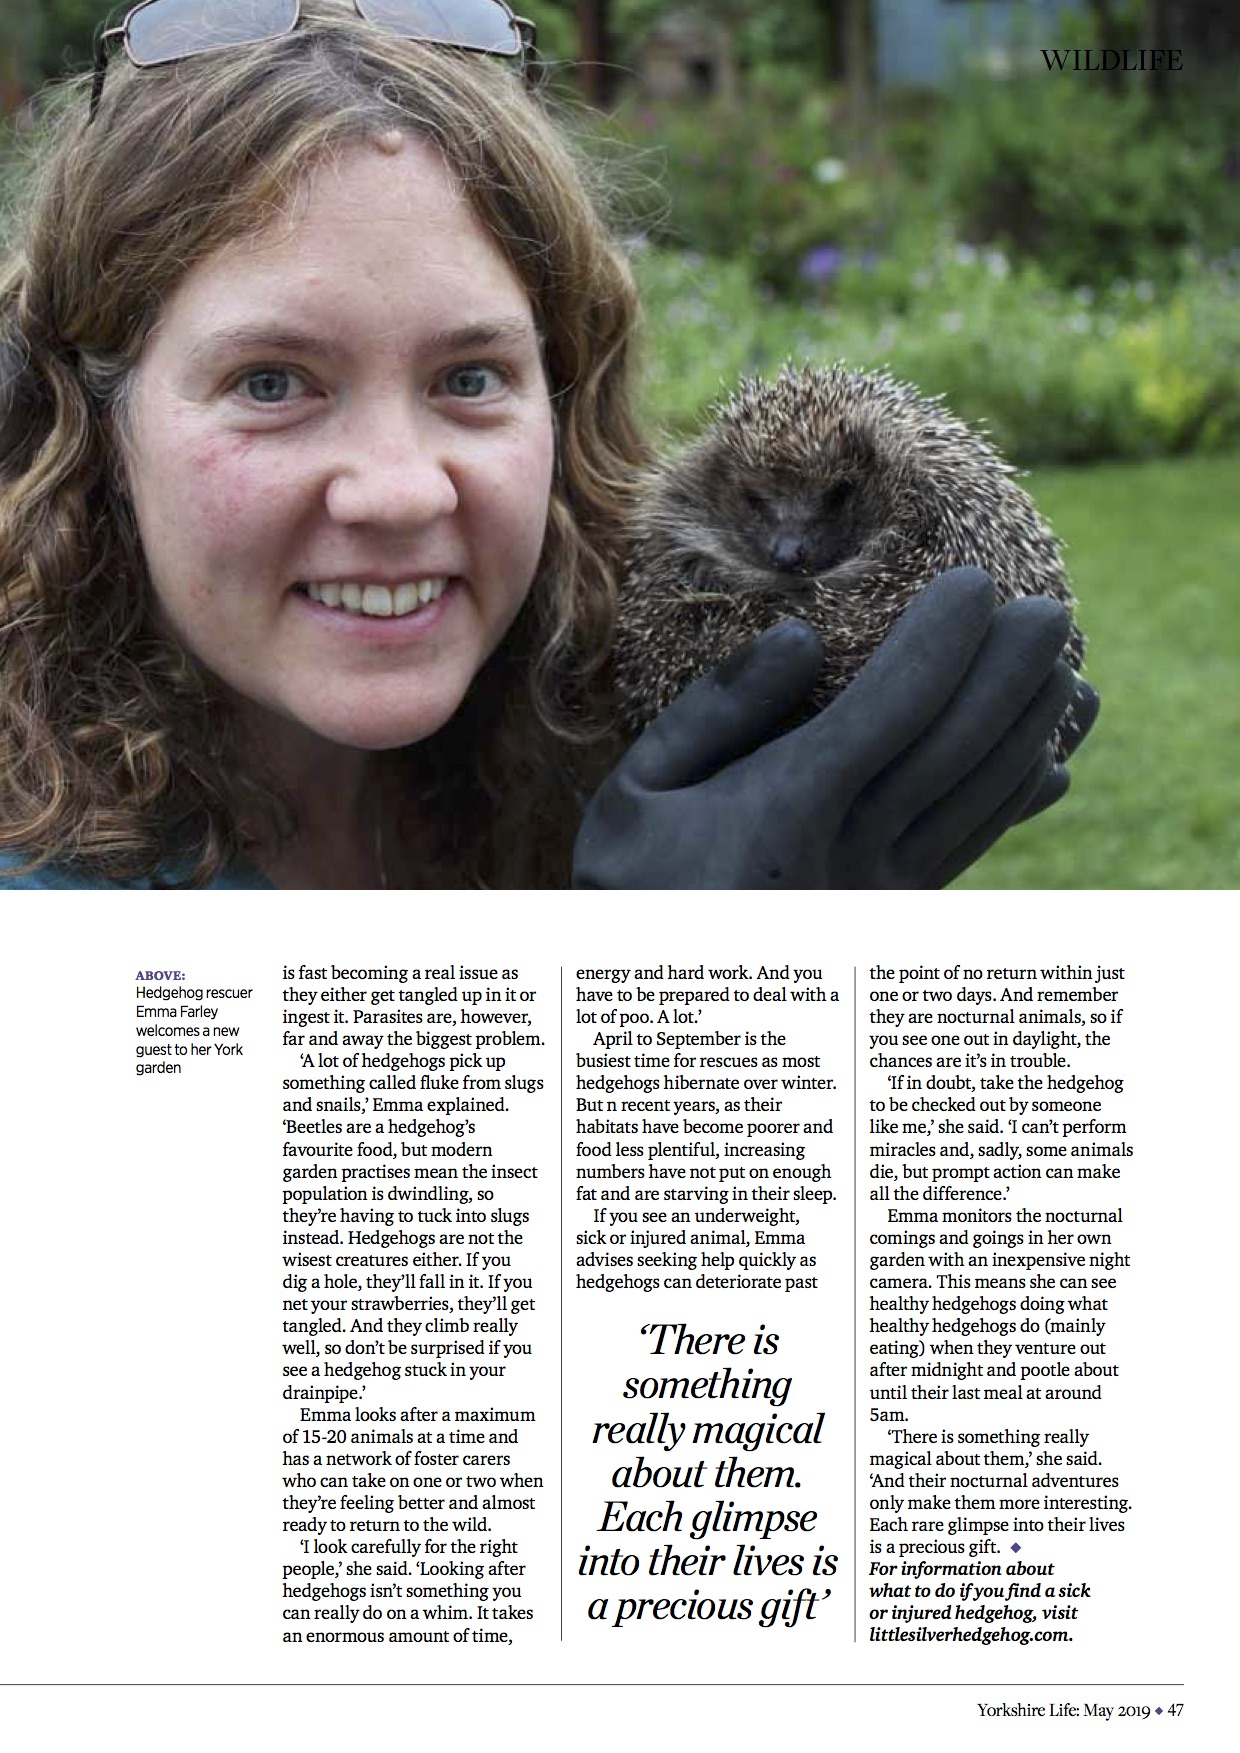 Yorkshire Life magazine hedgehogs and gardening